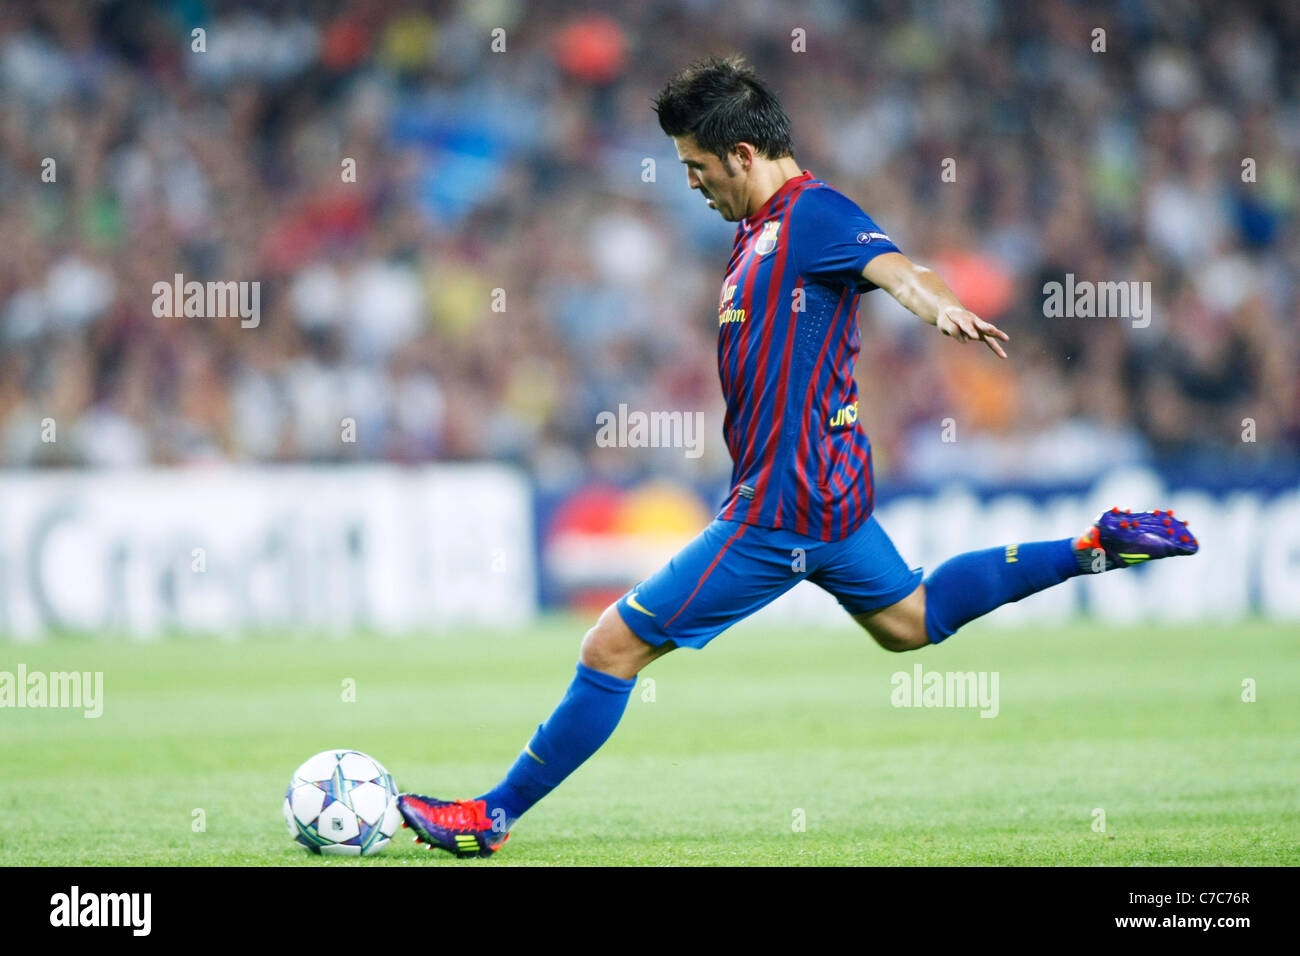 David Villa (Barcelona) play for the UEFA Champions League Group H match between FC Barcelona 2-2 AC Milan. - Stock Image